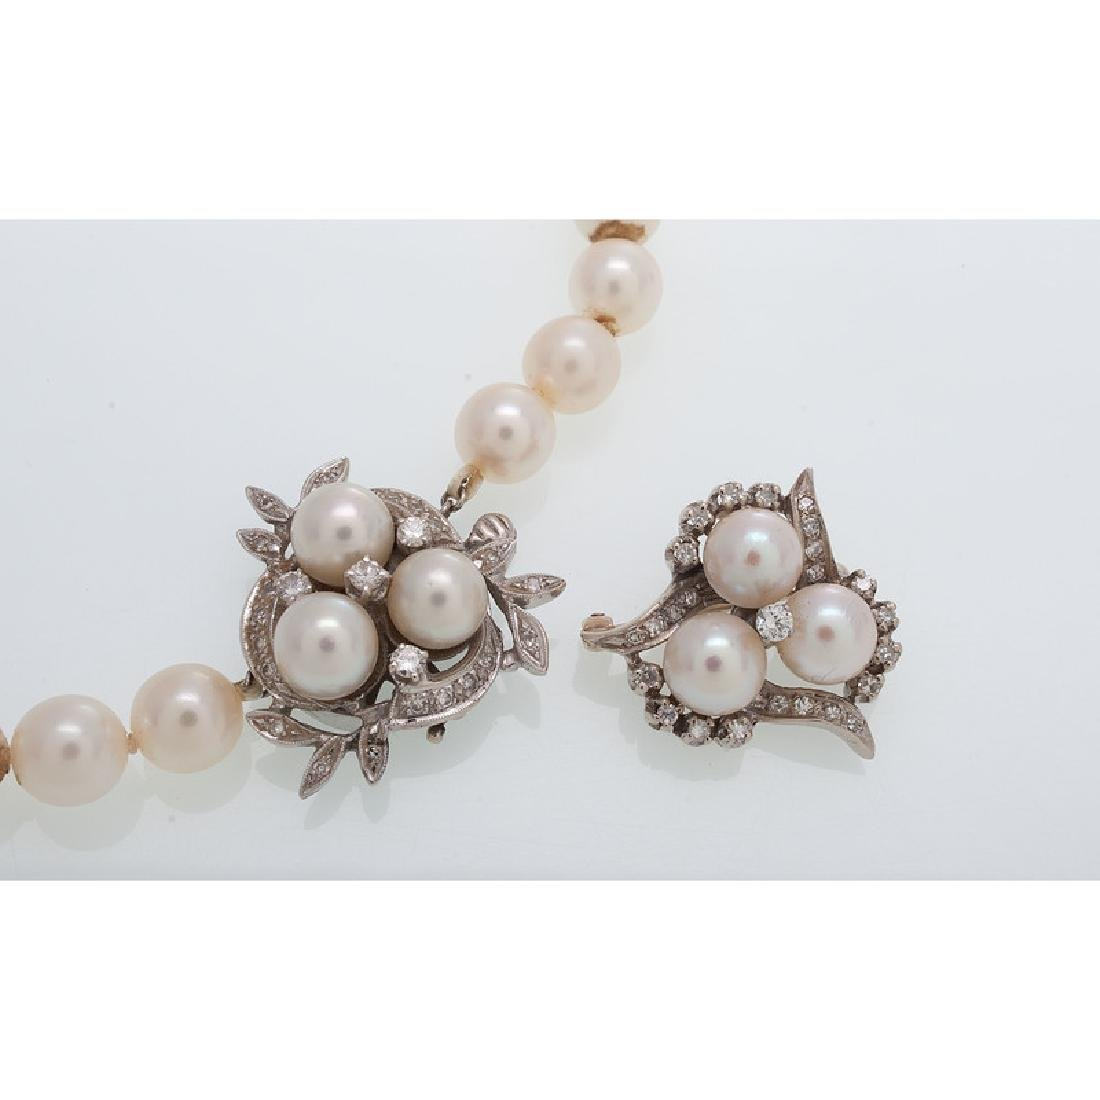 14 Karat White Gold Pearl Necklace and Brooch - 4